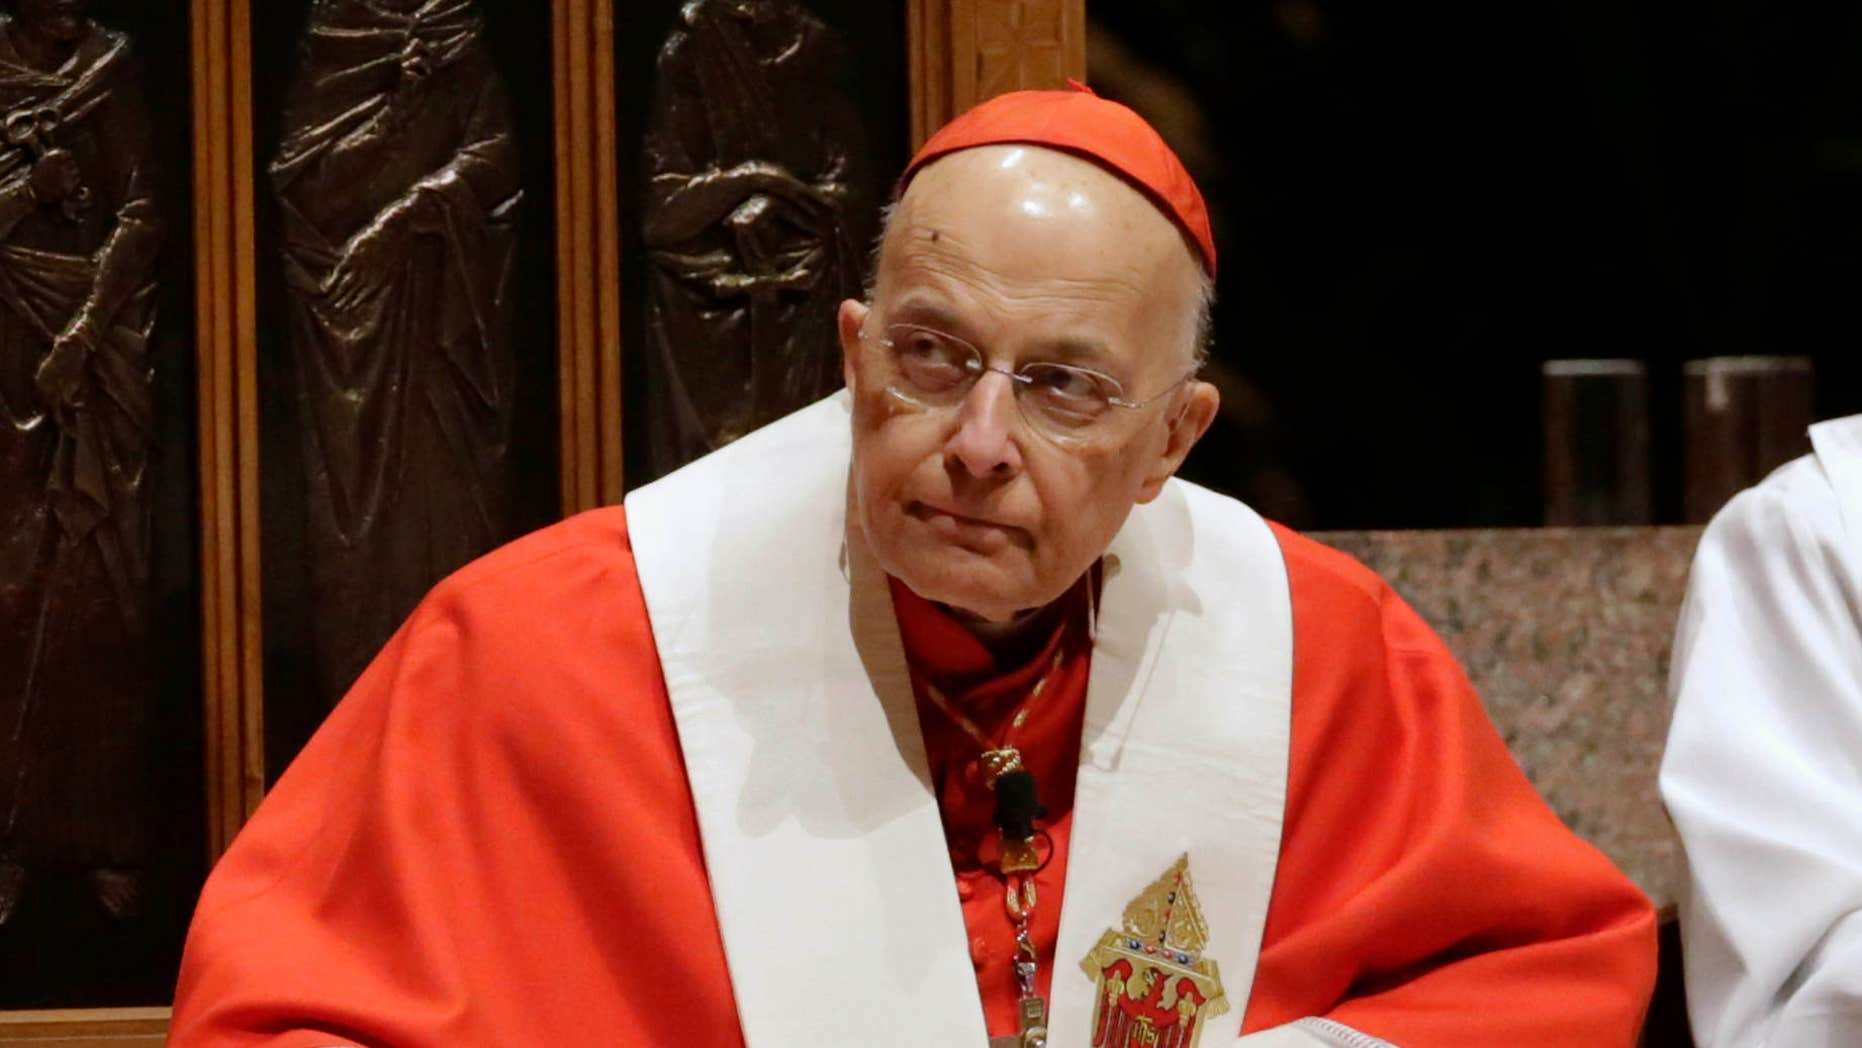 Nov. 17, 2014: Retiring Cardinal Francis George listens at Holy Name Cathedral in Chicago during Bishop Blase Cupich's Rite of Reception service.